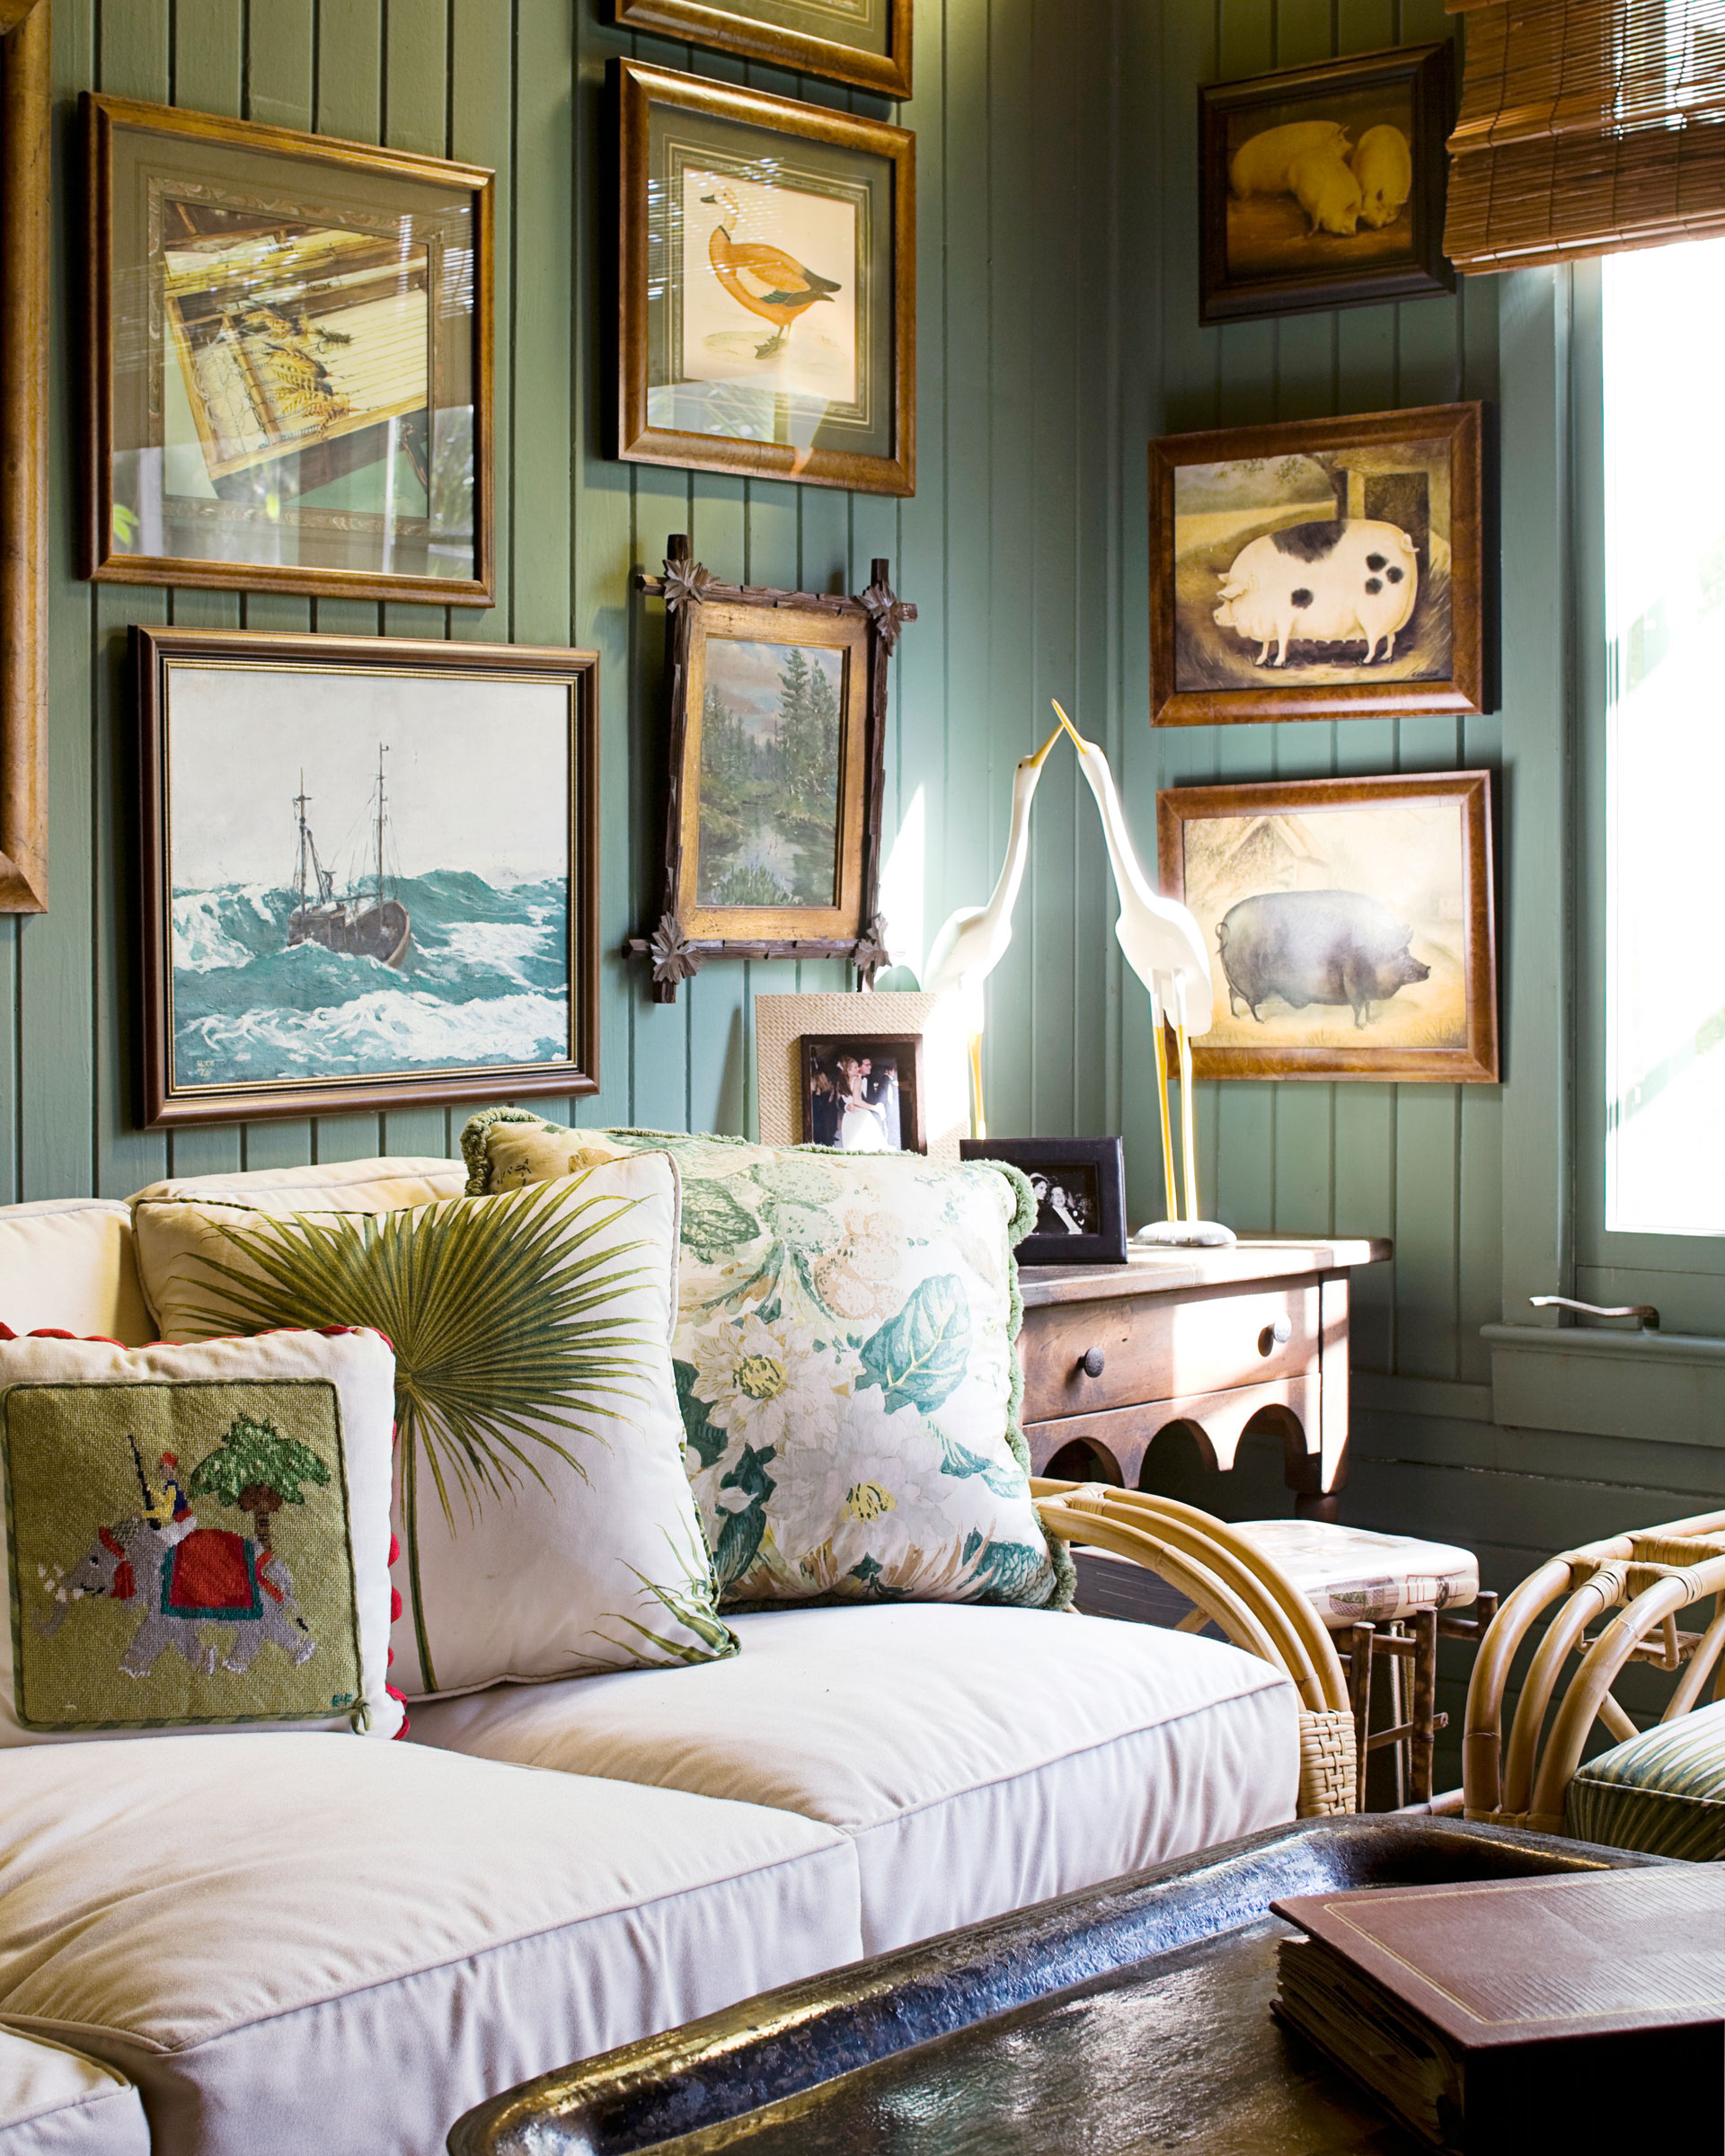 How To Hang Wall Art how to hang wall art - how to decorate with art